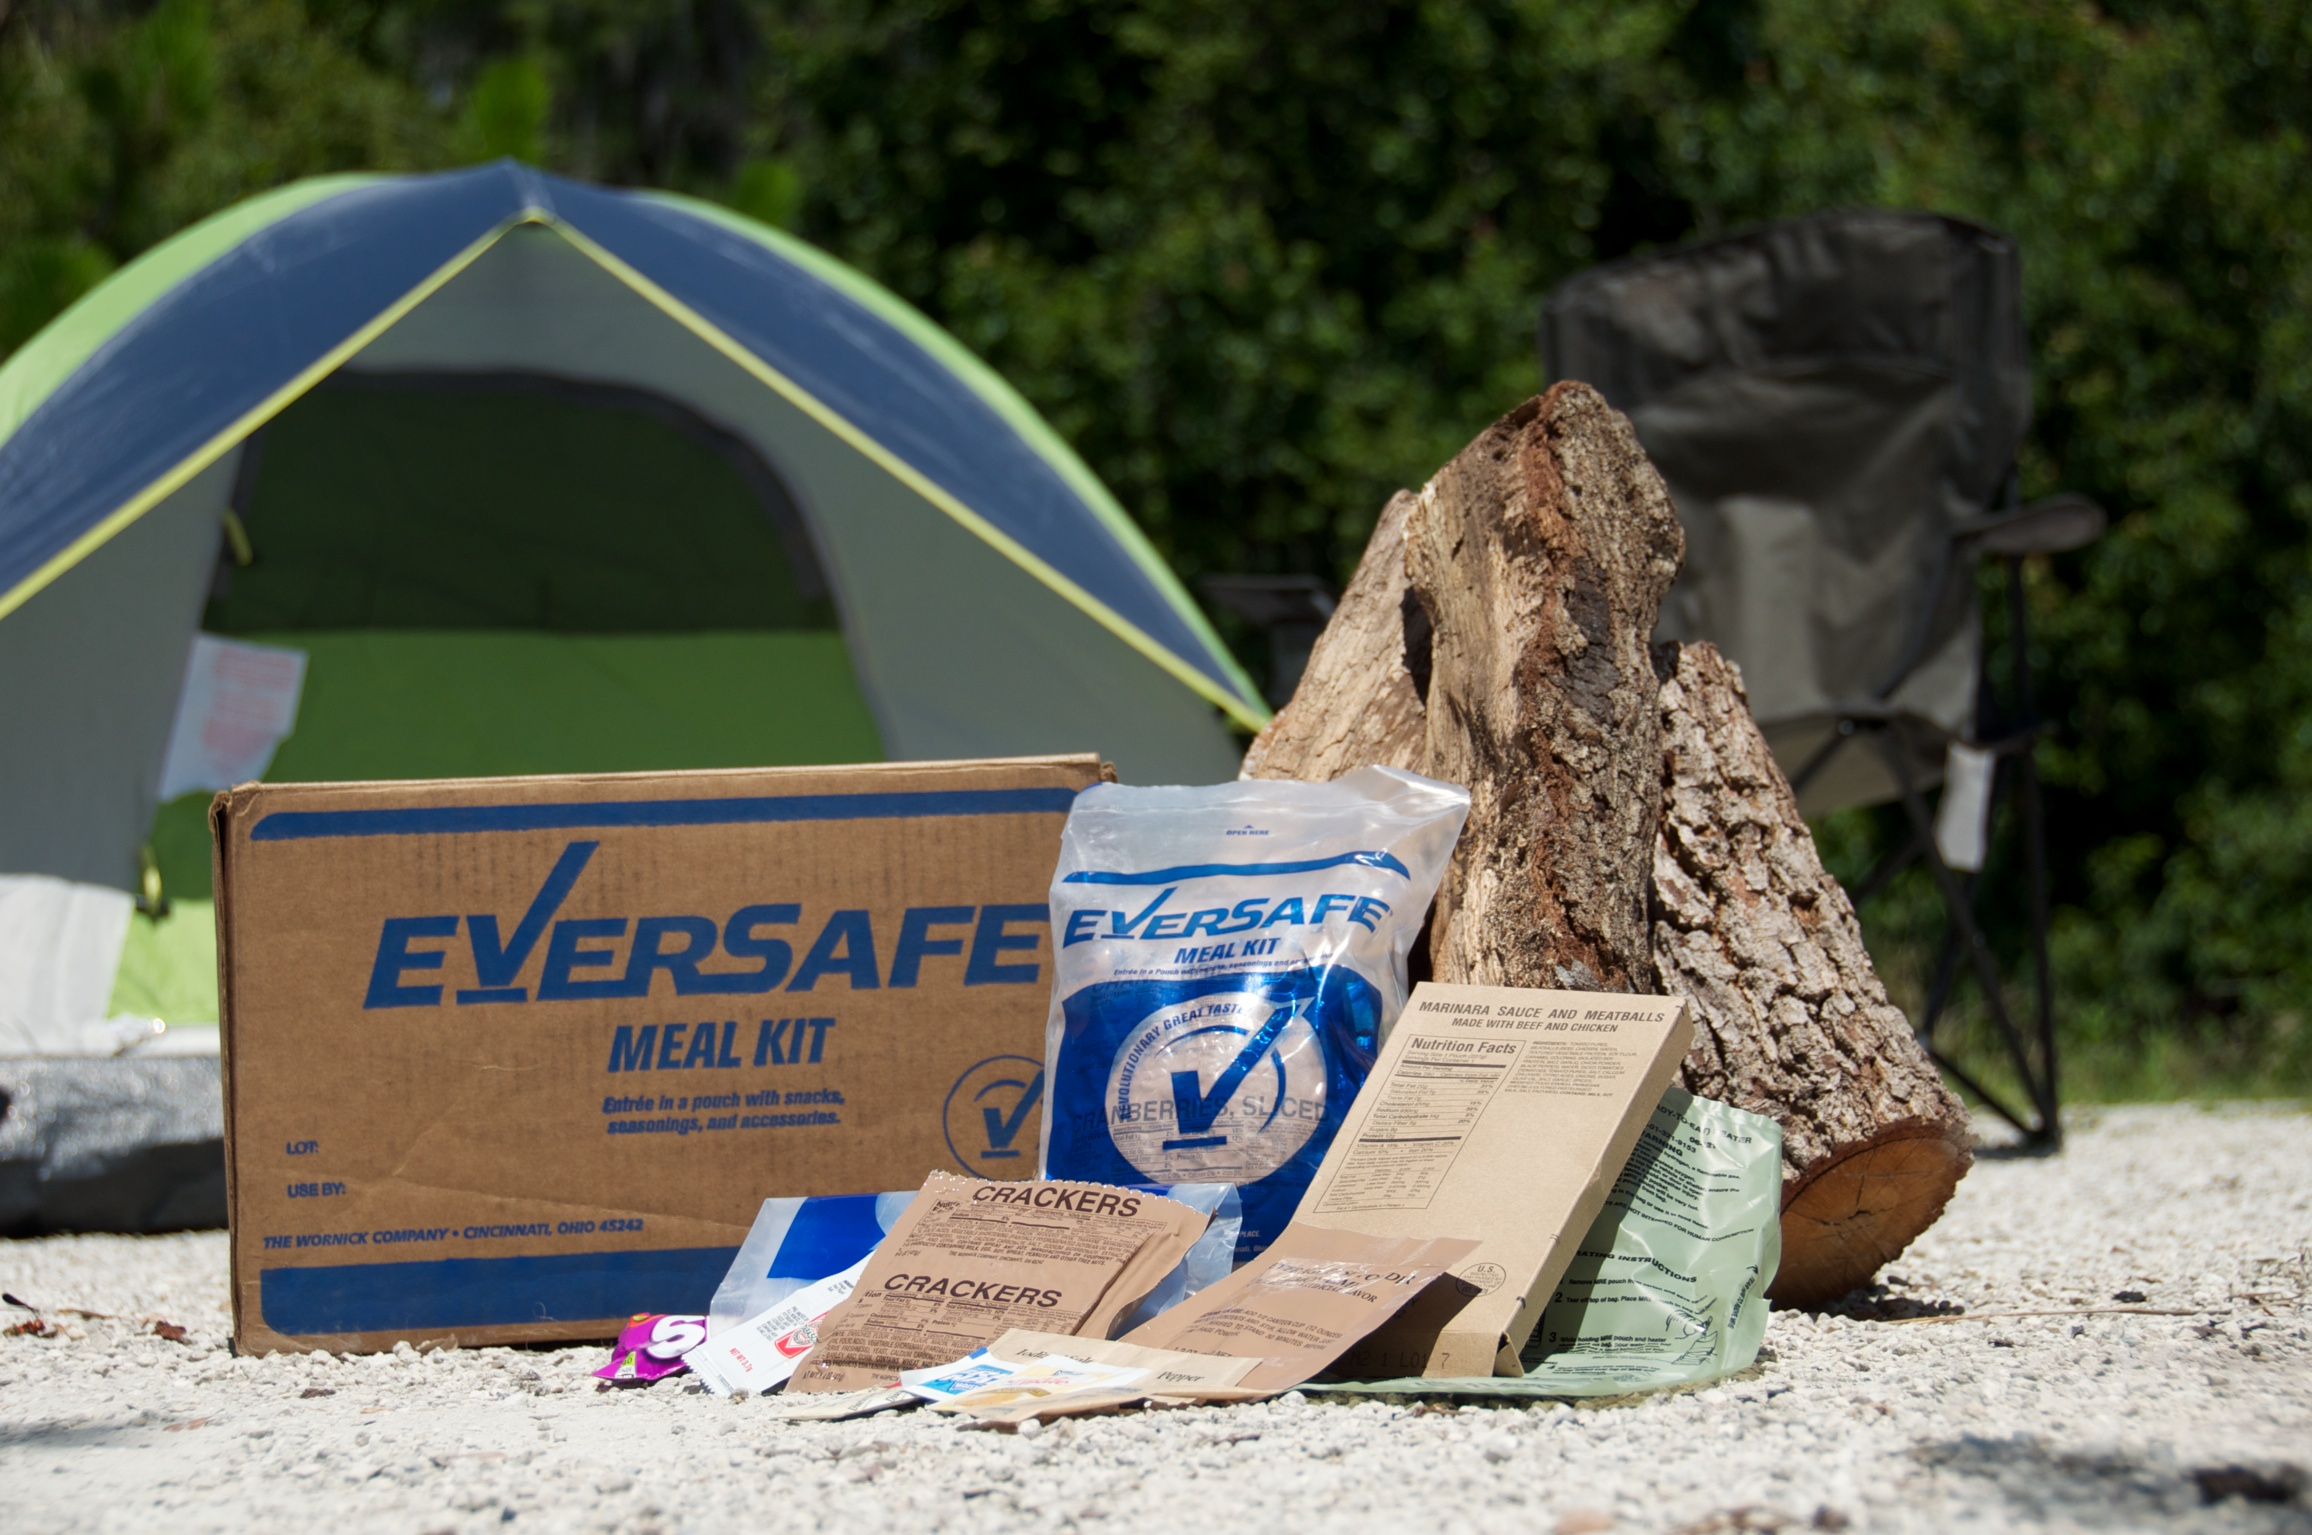 Eversafe Civilian MREs